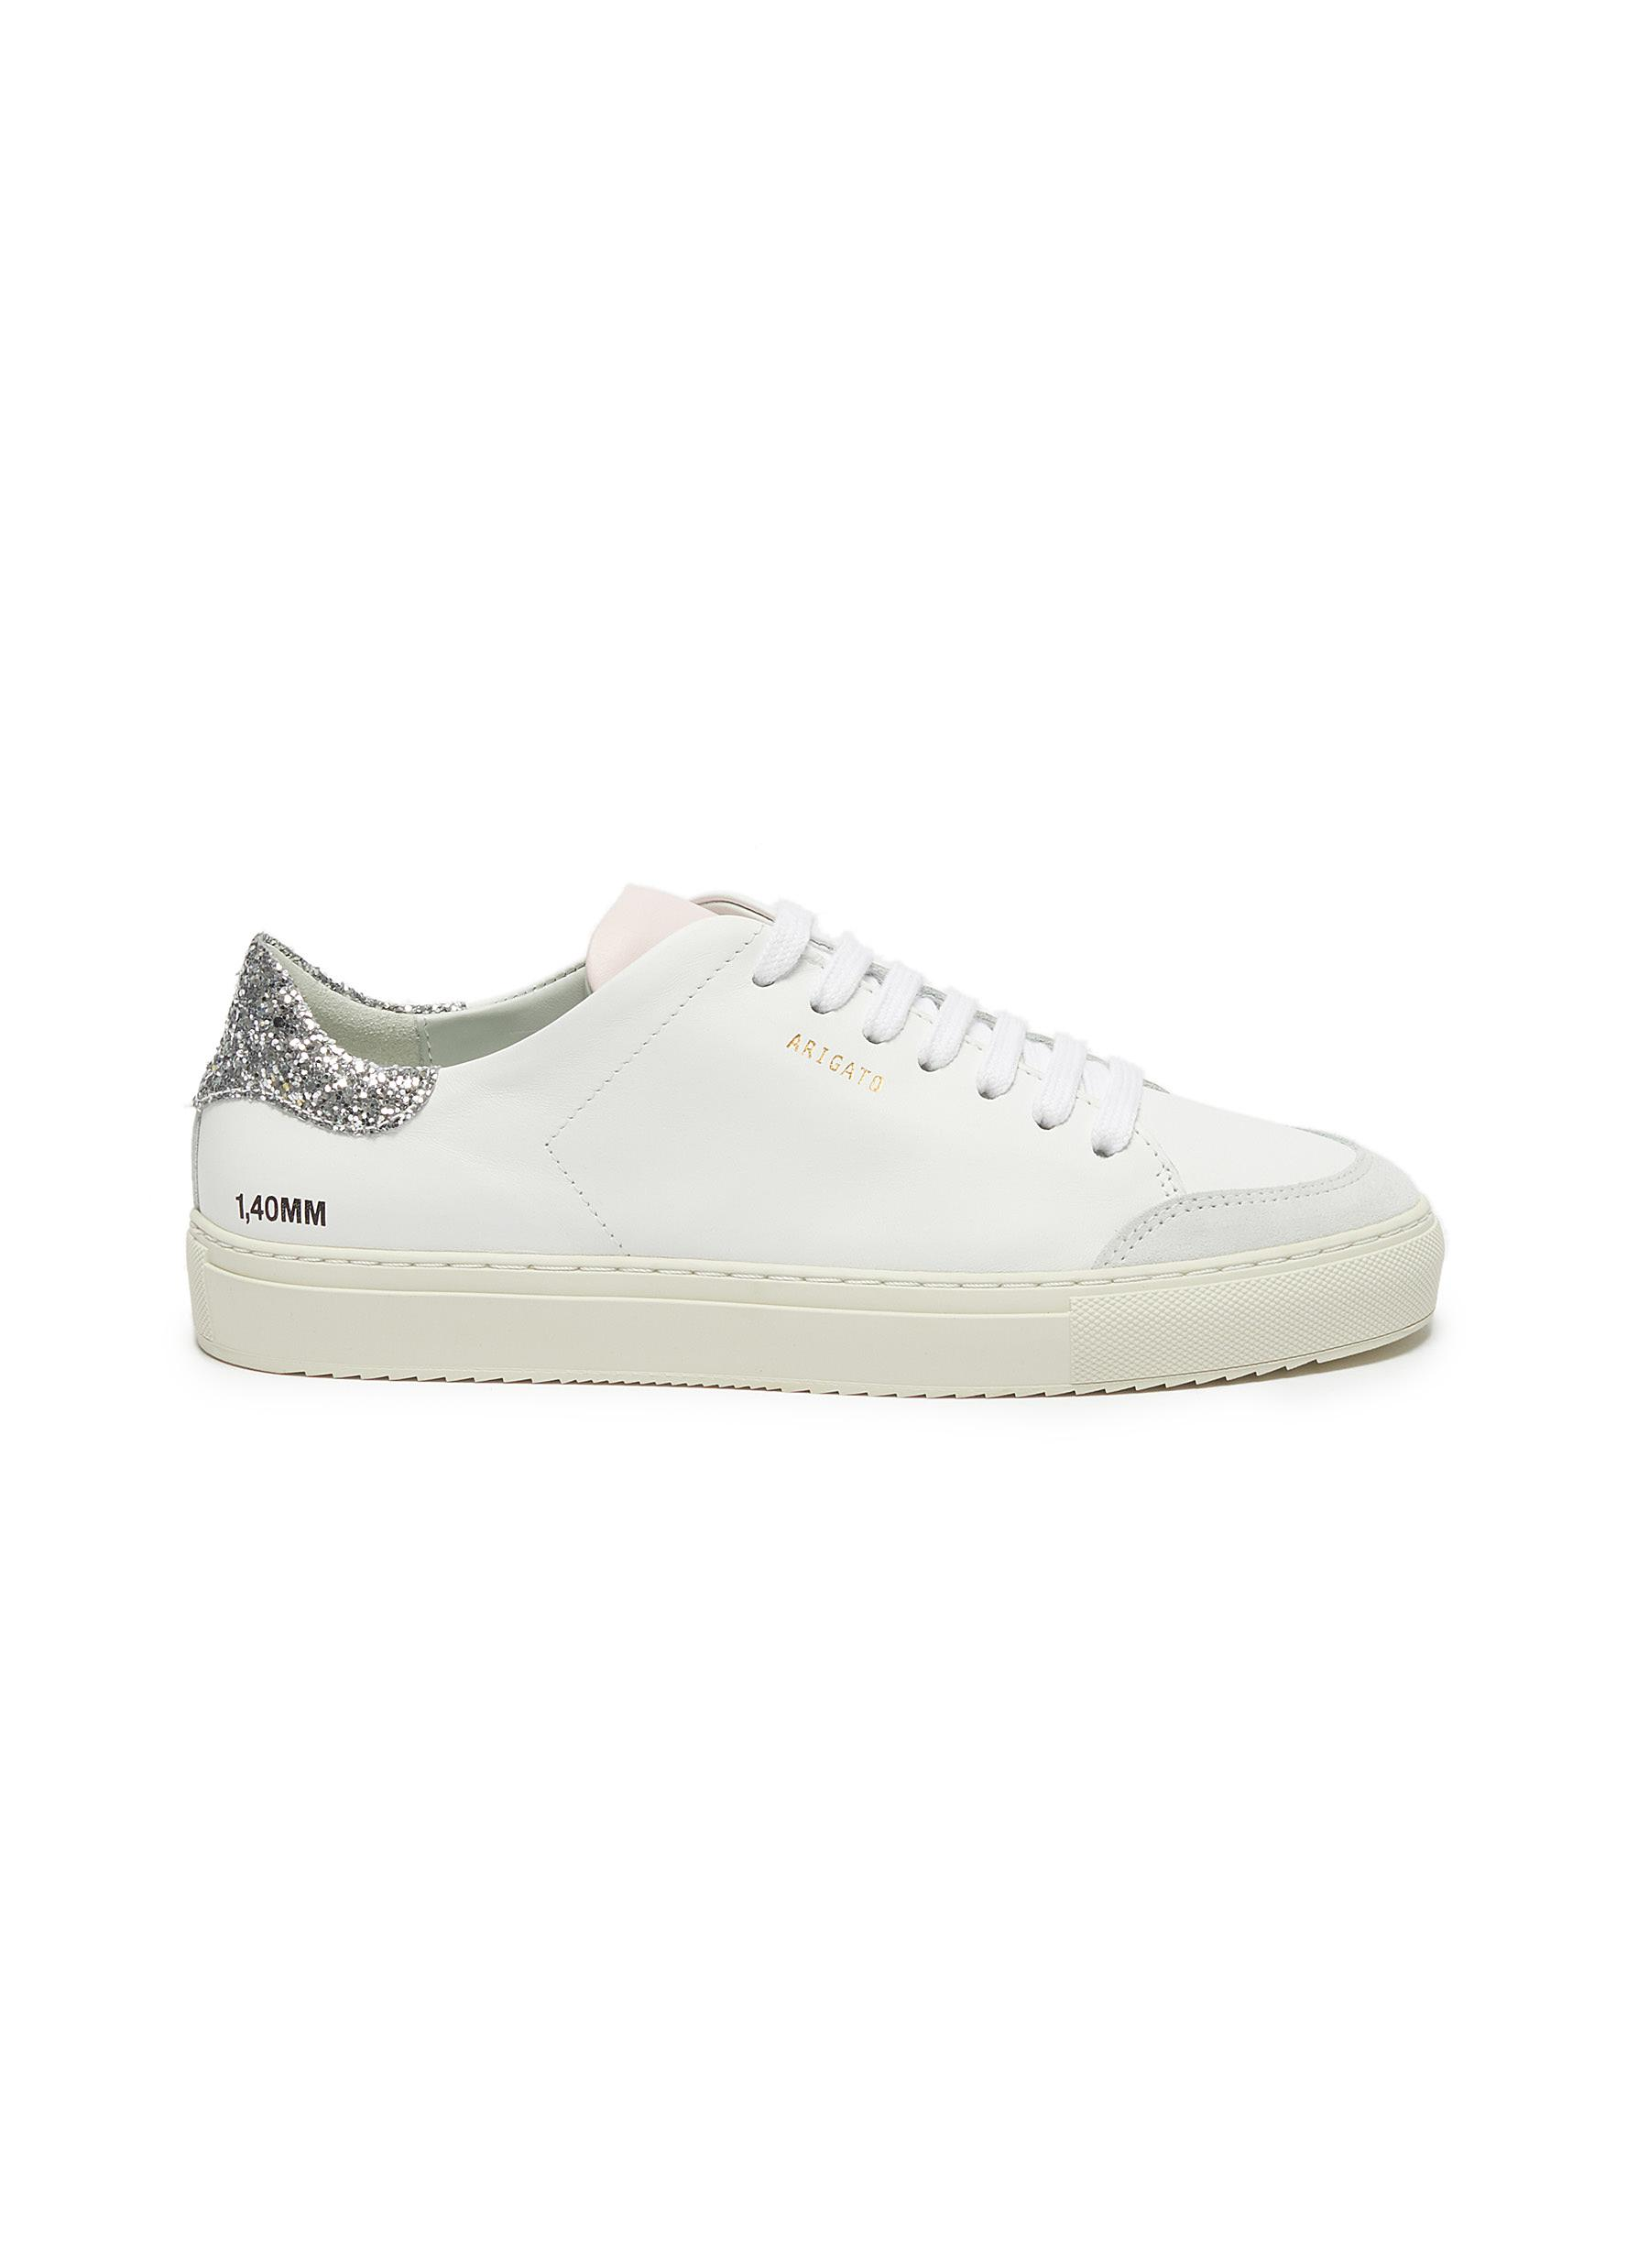 shop Axel Arigato 'Clean 90' glitter tab contrast tongue leather sneakers online